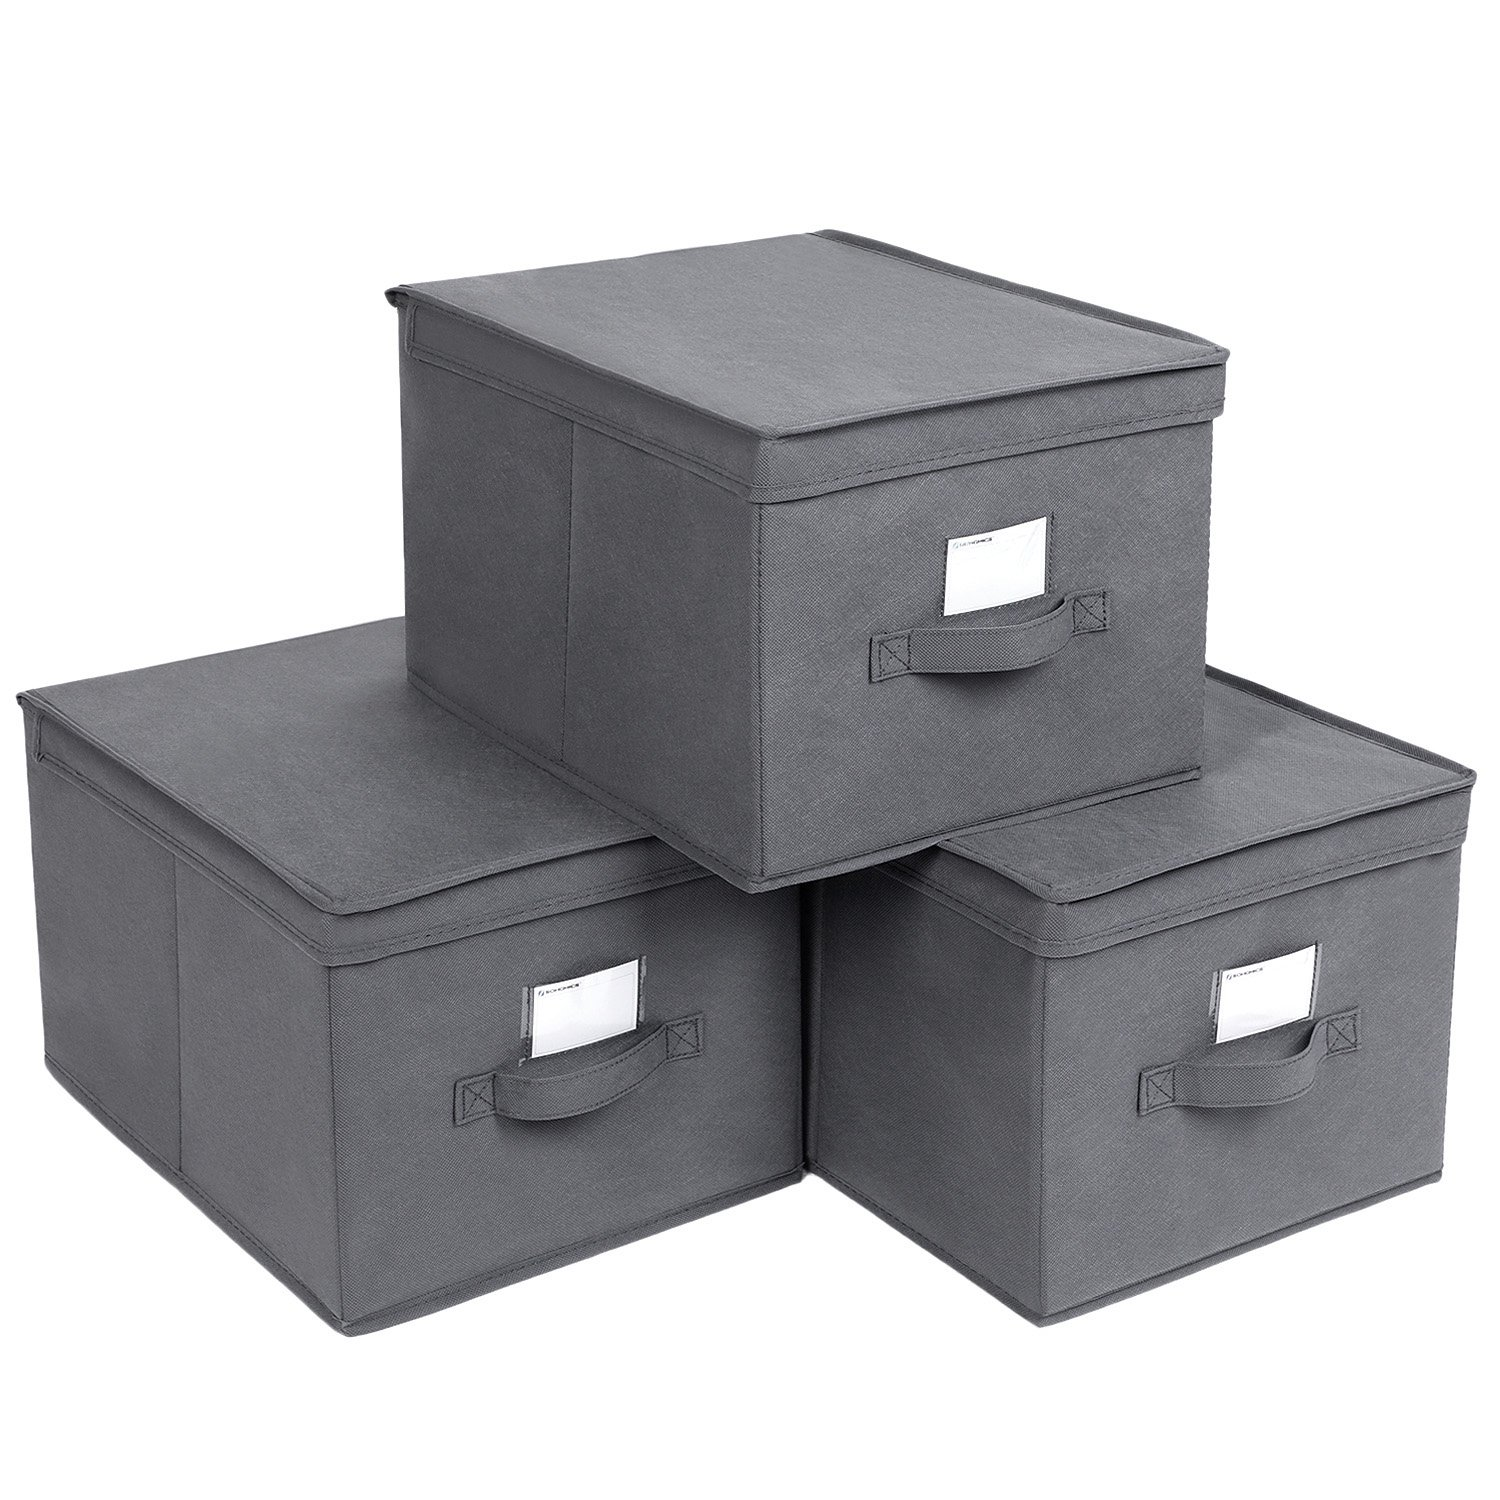 21ca9654c85e SONGMICS Large Storage Cubes Bin Box with Lids and Handles, Non-Woven  Fabric Foldable Cloth Organizer for Home, Office, Nursery, Closet, Bedroom,  ...